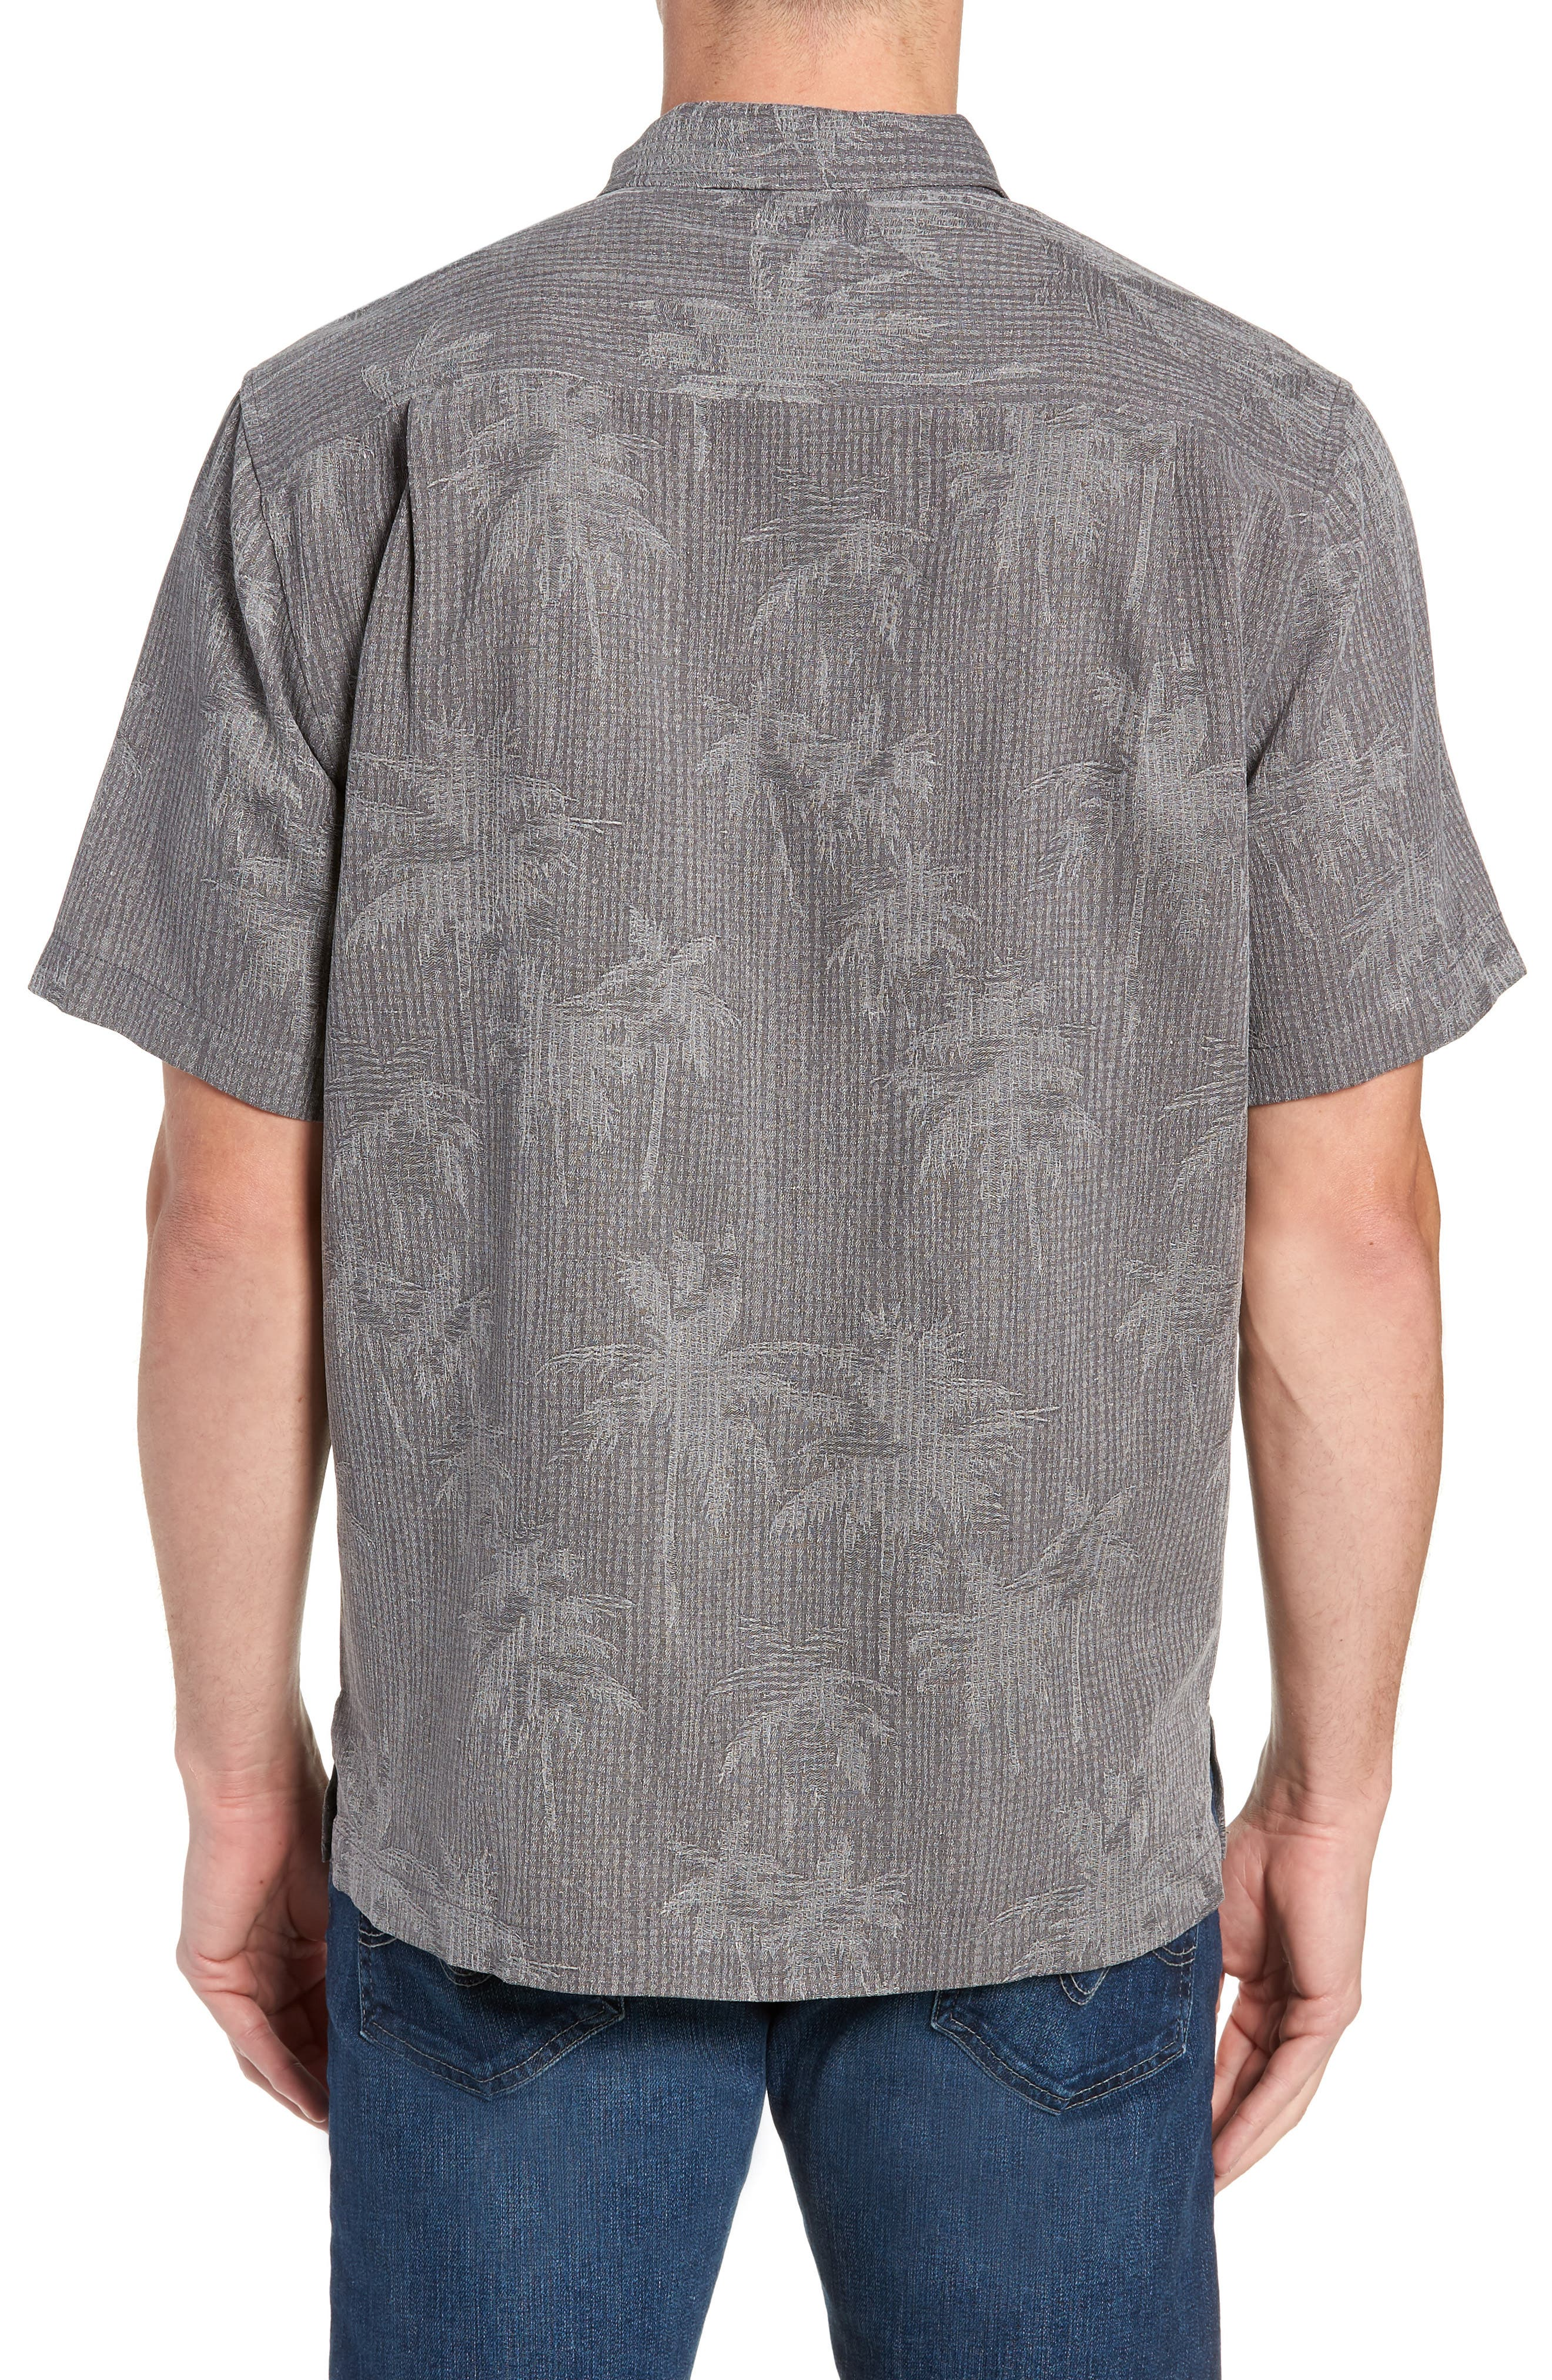 TOMMY BAHAMA, Digital Palms Silk Sport Shirt, Alternate thumbnail 3, color, CAVE